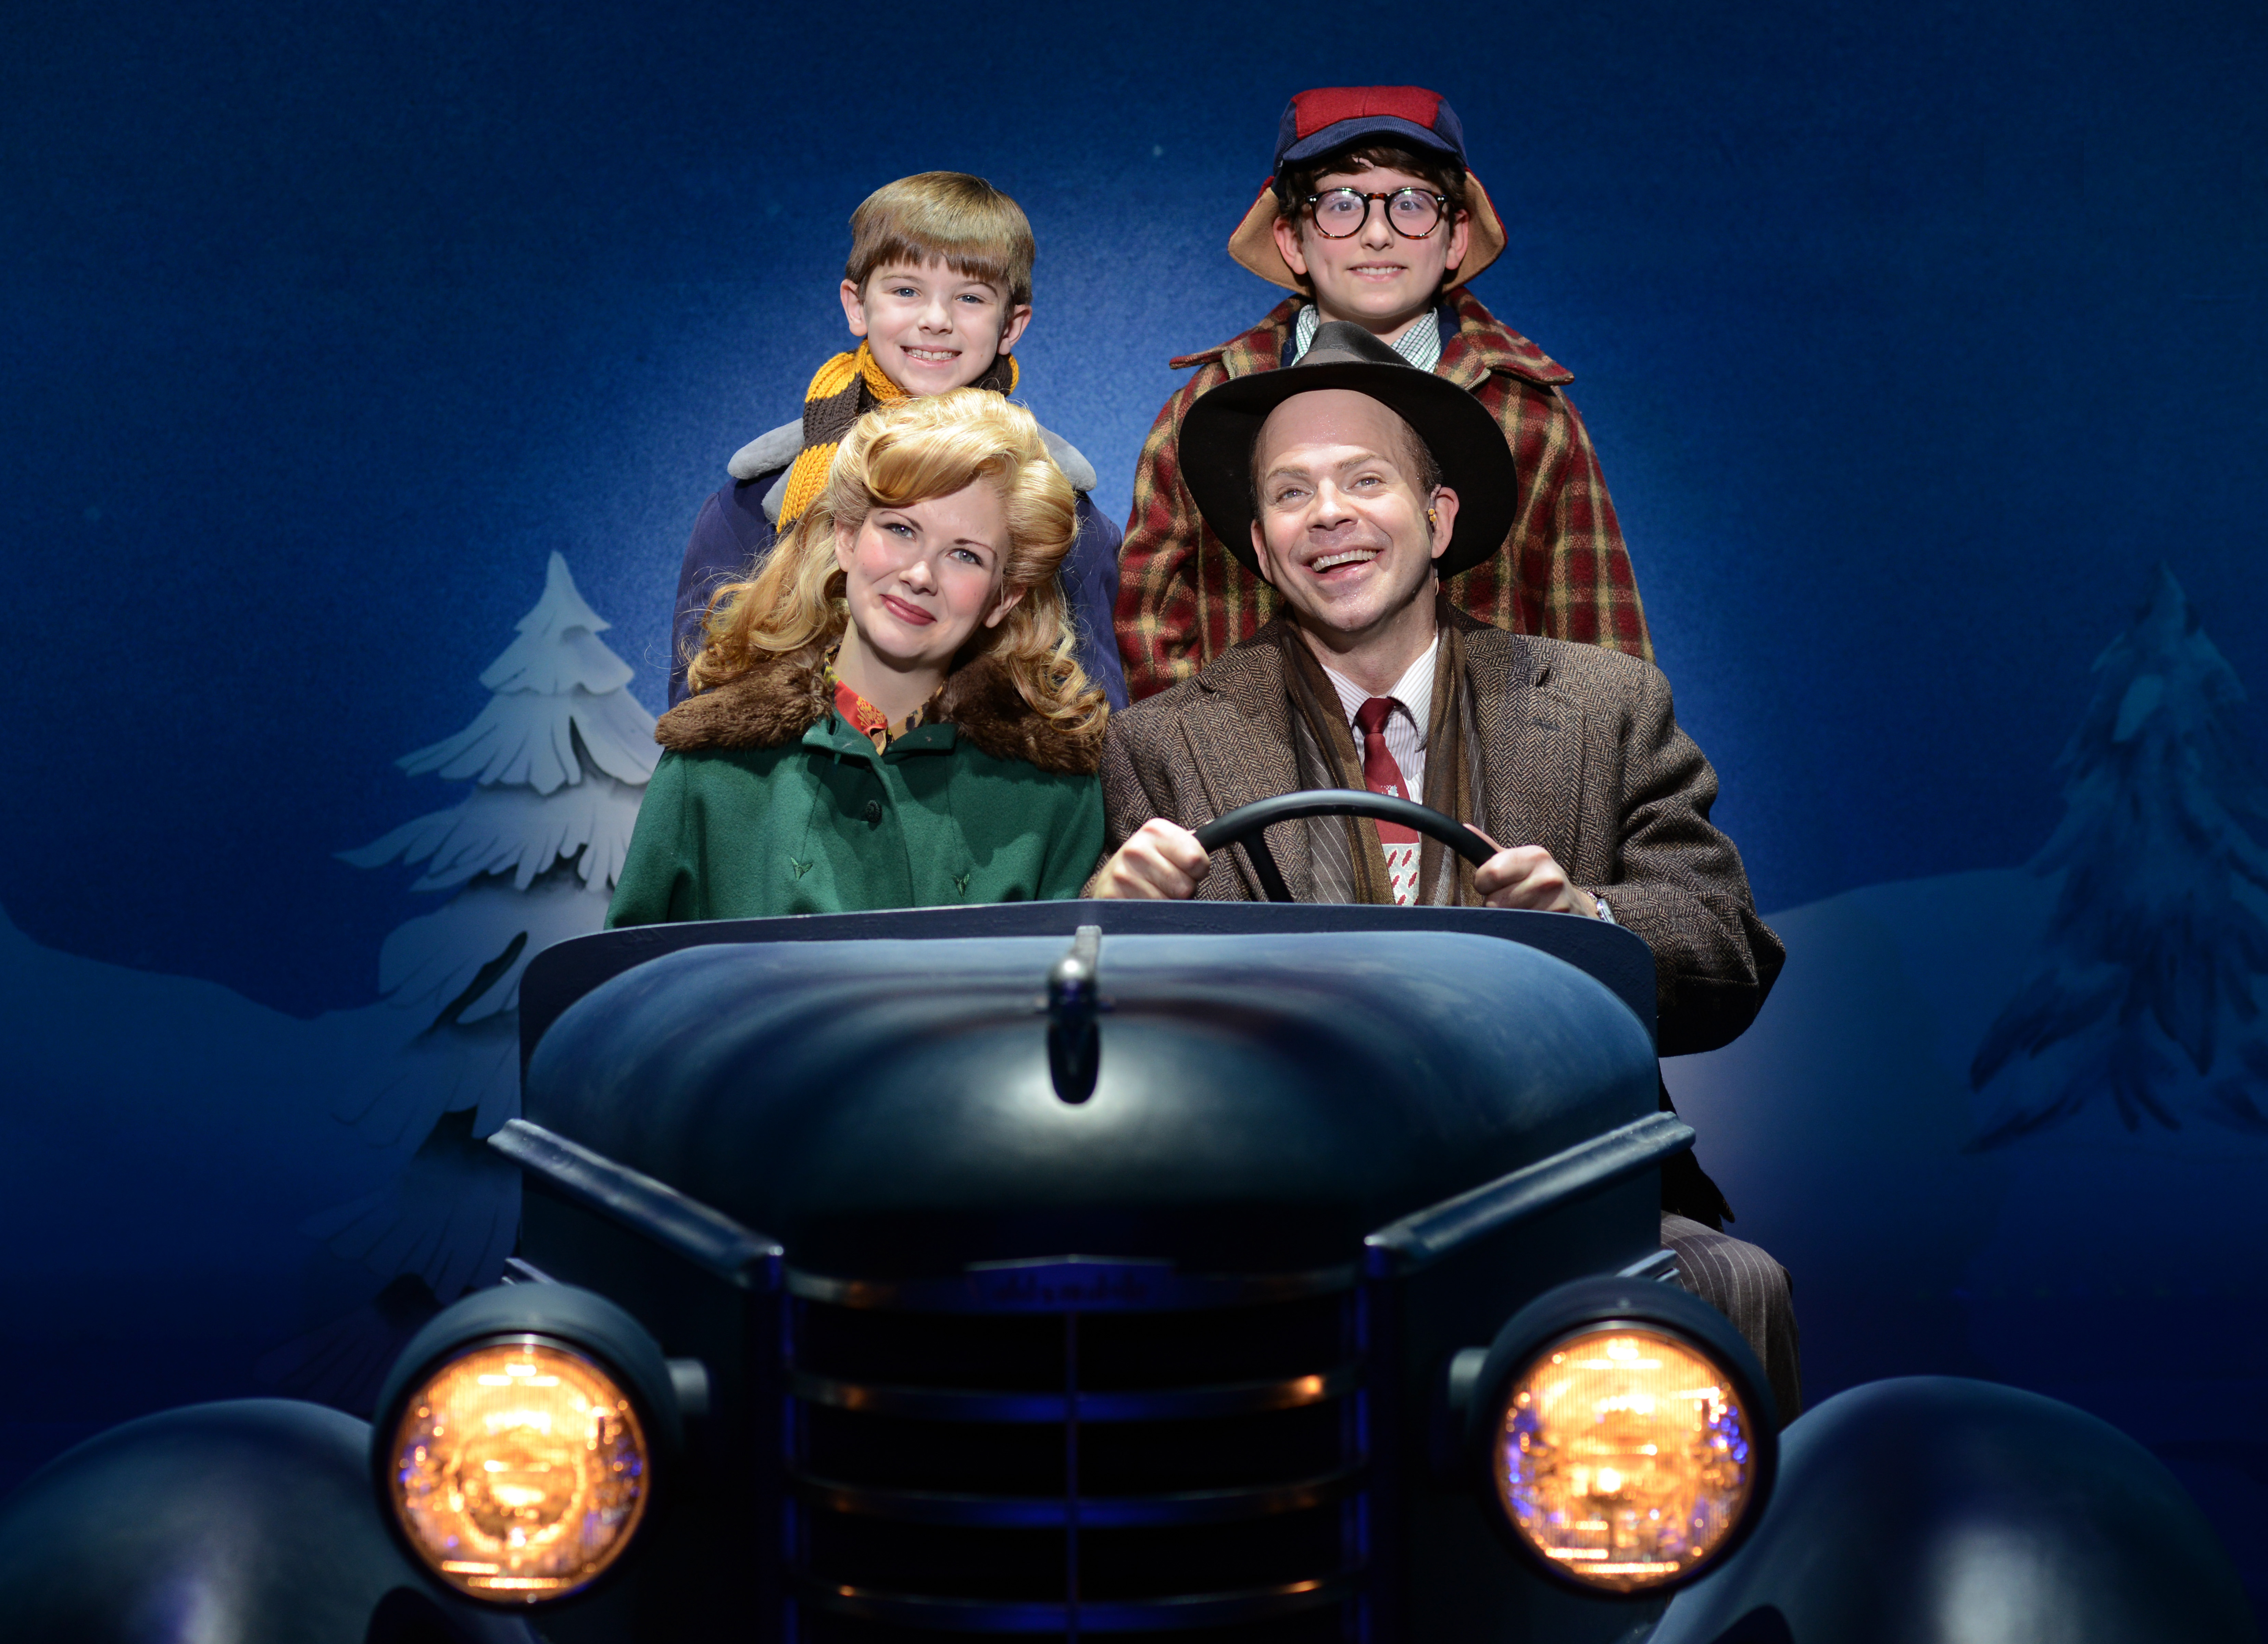 The Parker family sits in their car. We see the bottom portion of the car with headlights, while the windshield and top of car are removed for visibility. Father sits at the steering wheel with mother beside him in the front passenger seat and the two sons behind in the back seat. They are dressed for winter: various jackets, scarves, and hats. Behind them is a winter scene, pine trees stand on an outline of snow covered hills.